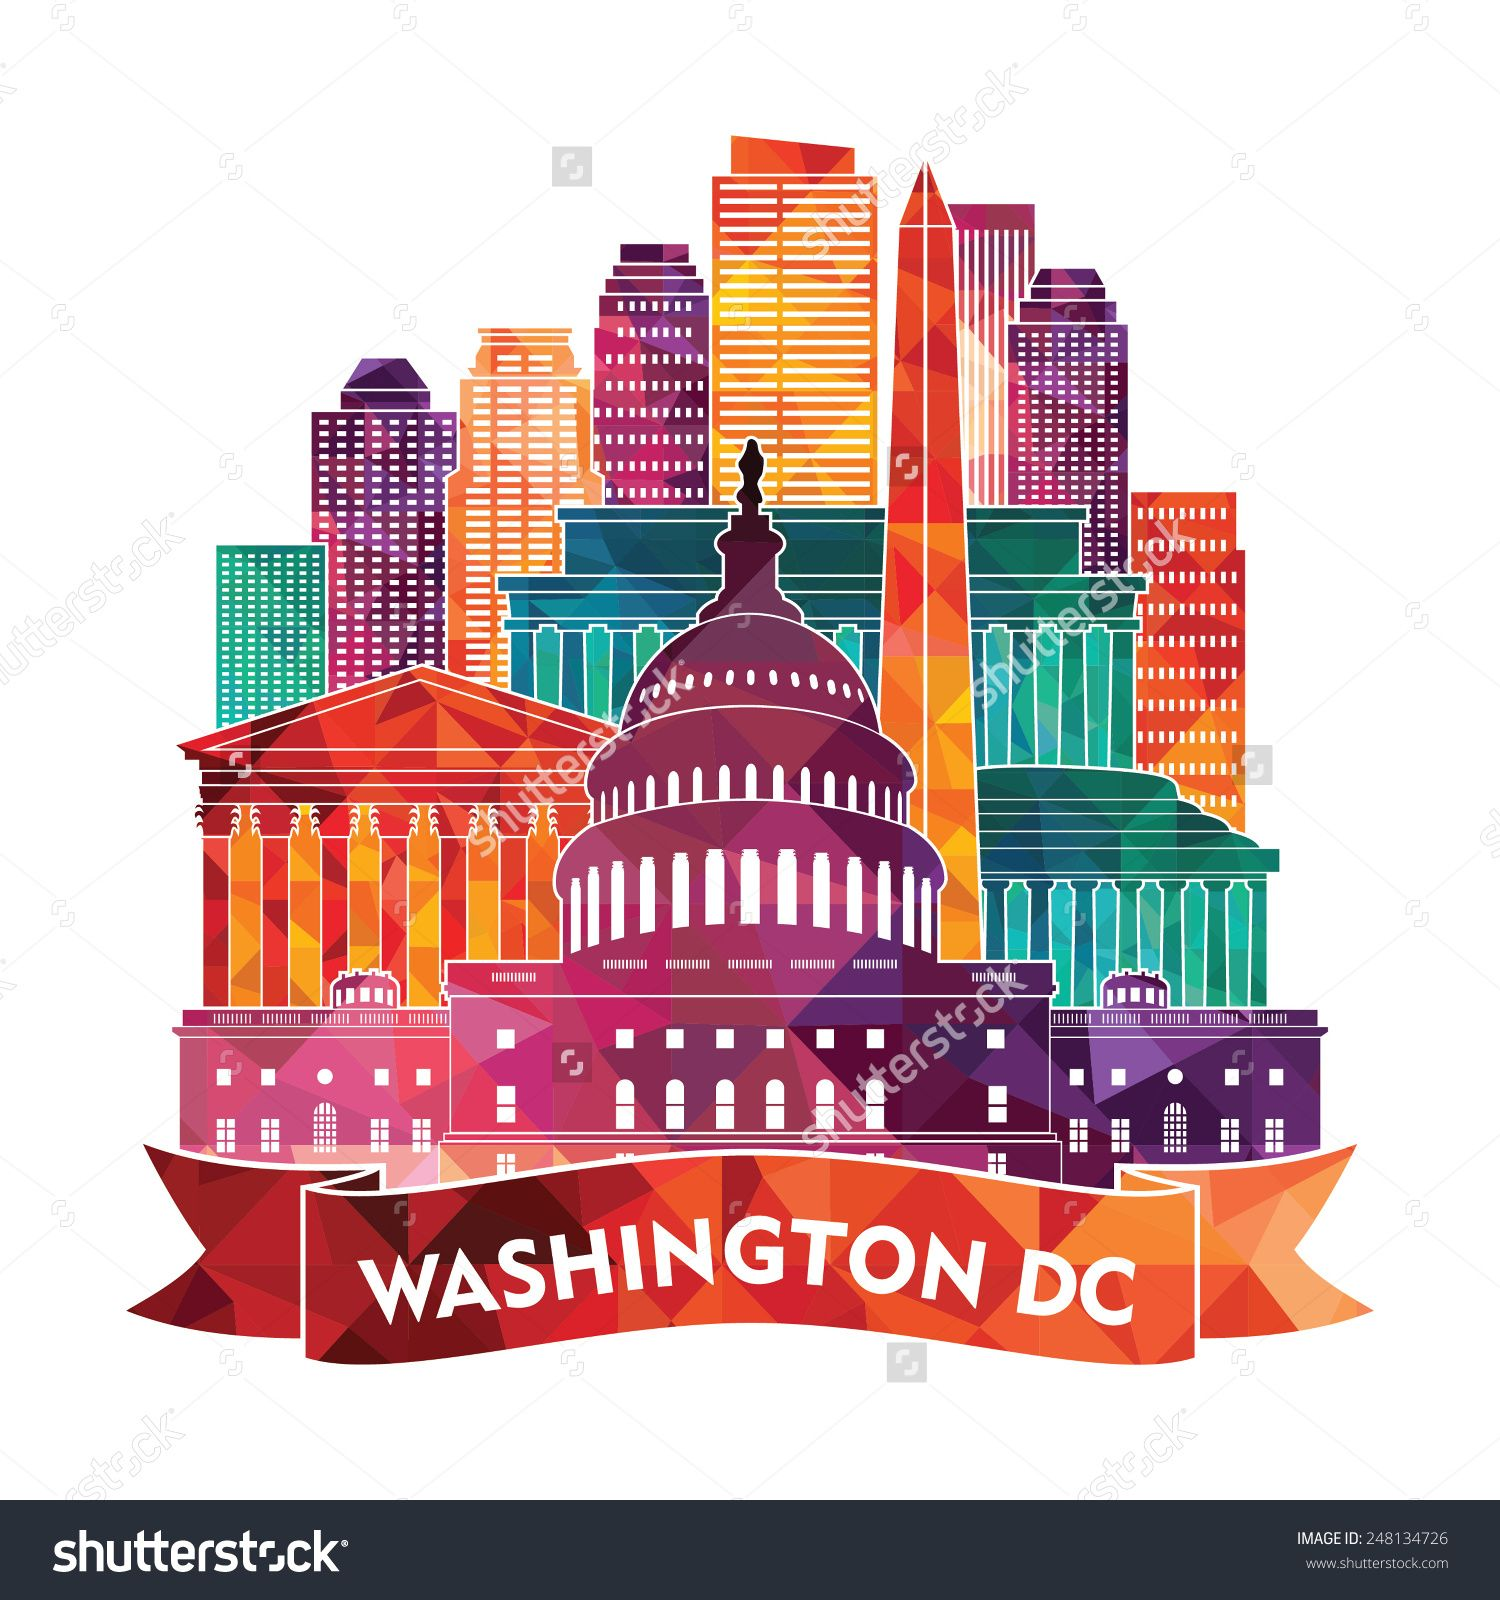 List of cities and towns in Washington - Wikipedia